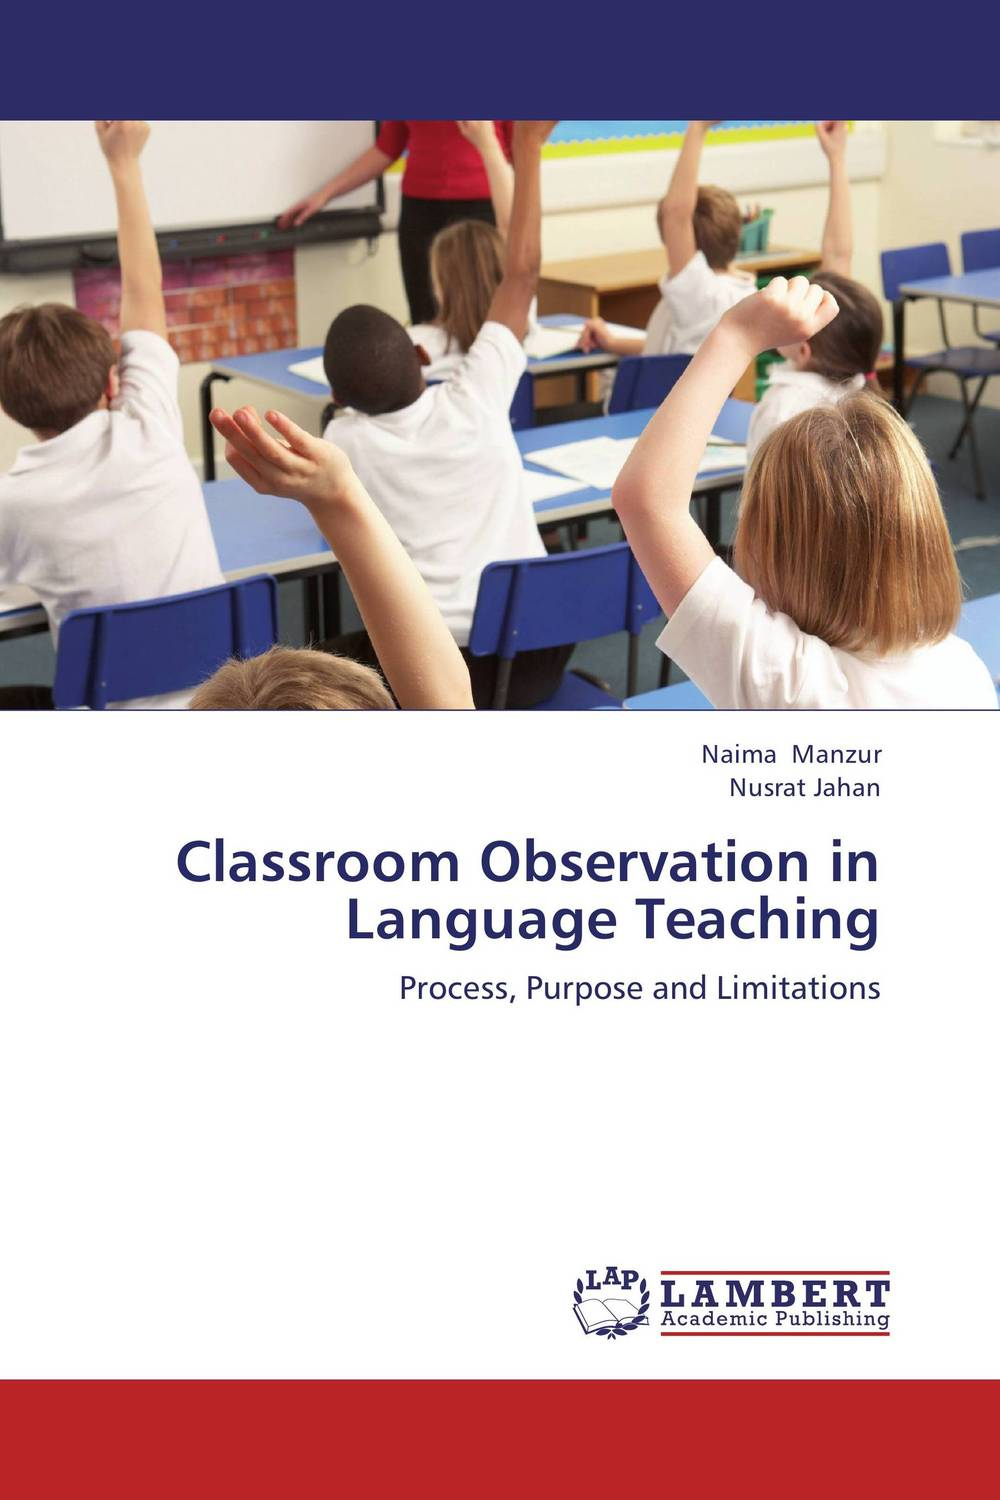 Classroom Observation in Language Teaching